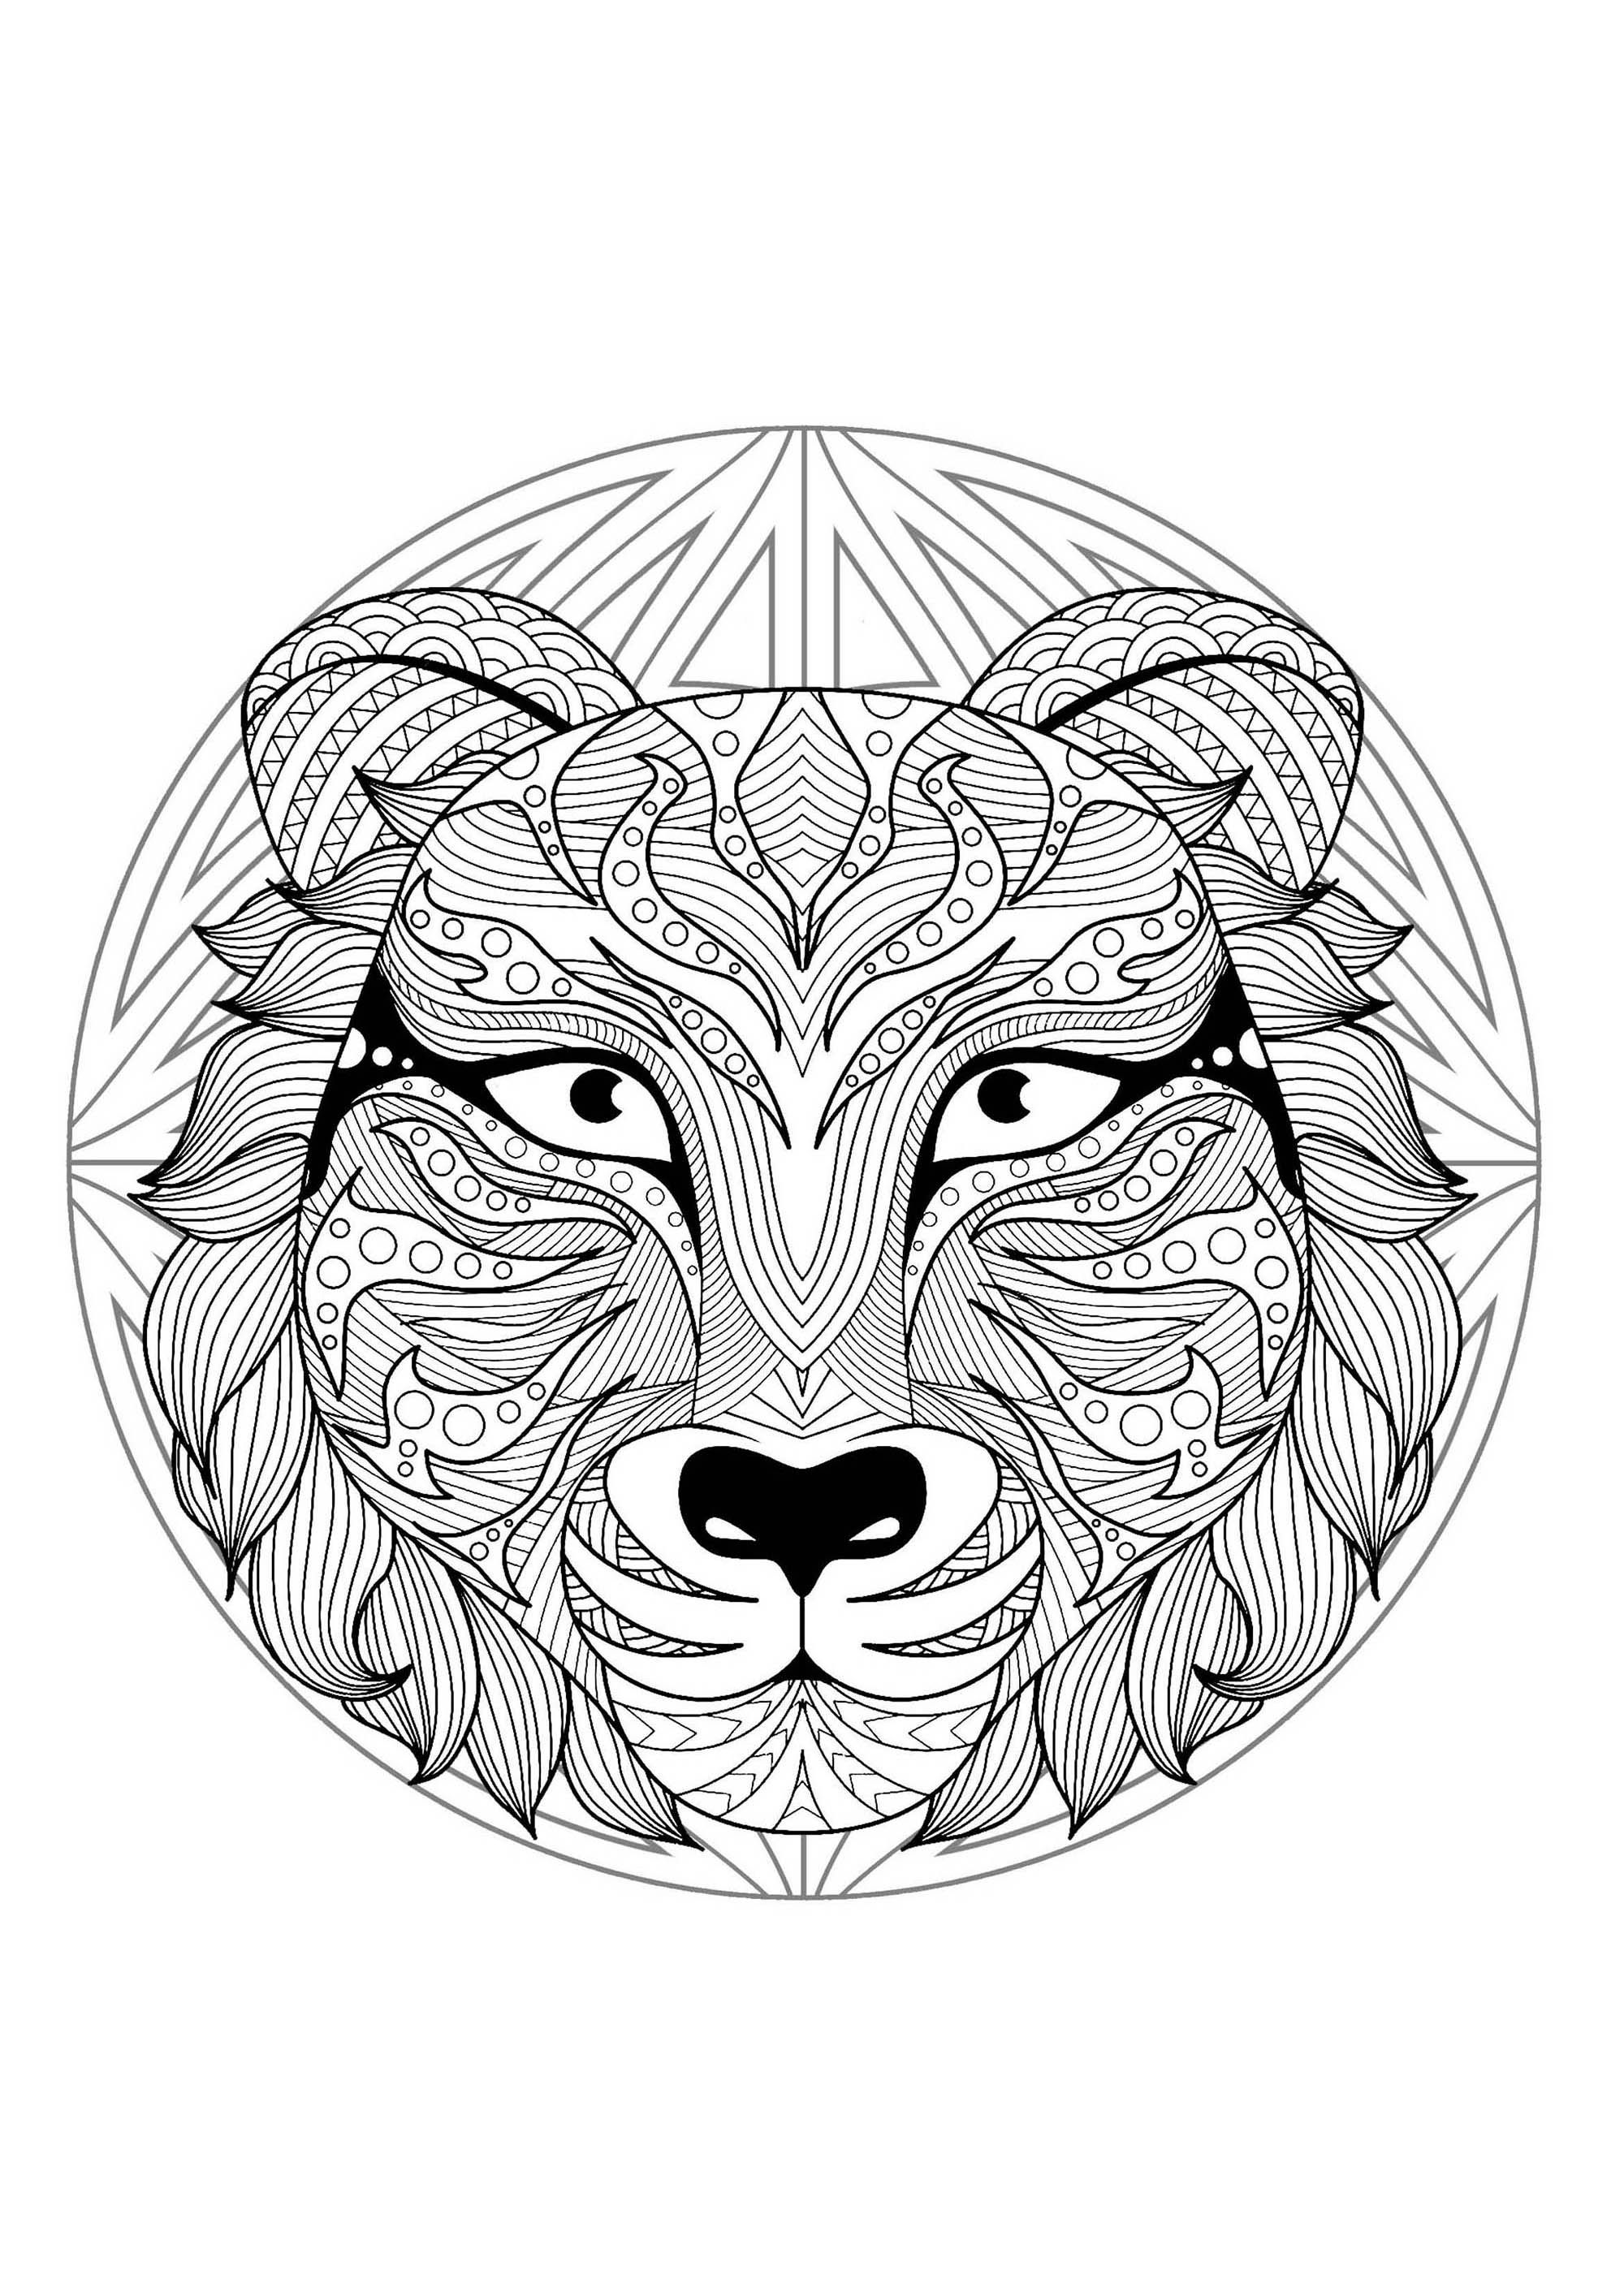 Mandala to color with very special Tiger head and simple patterns